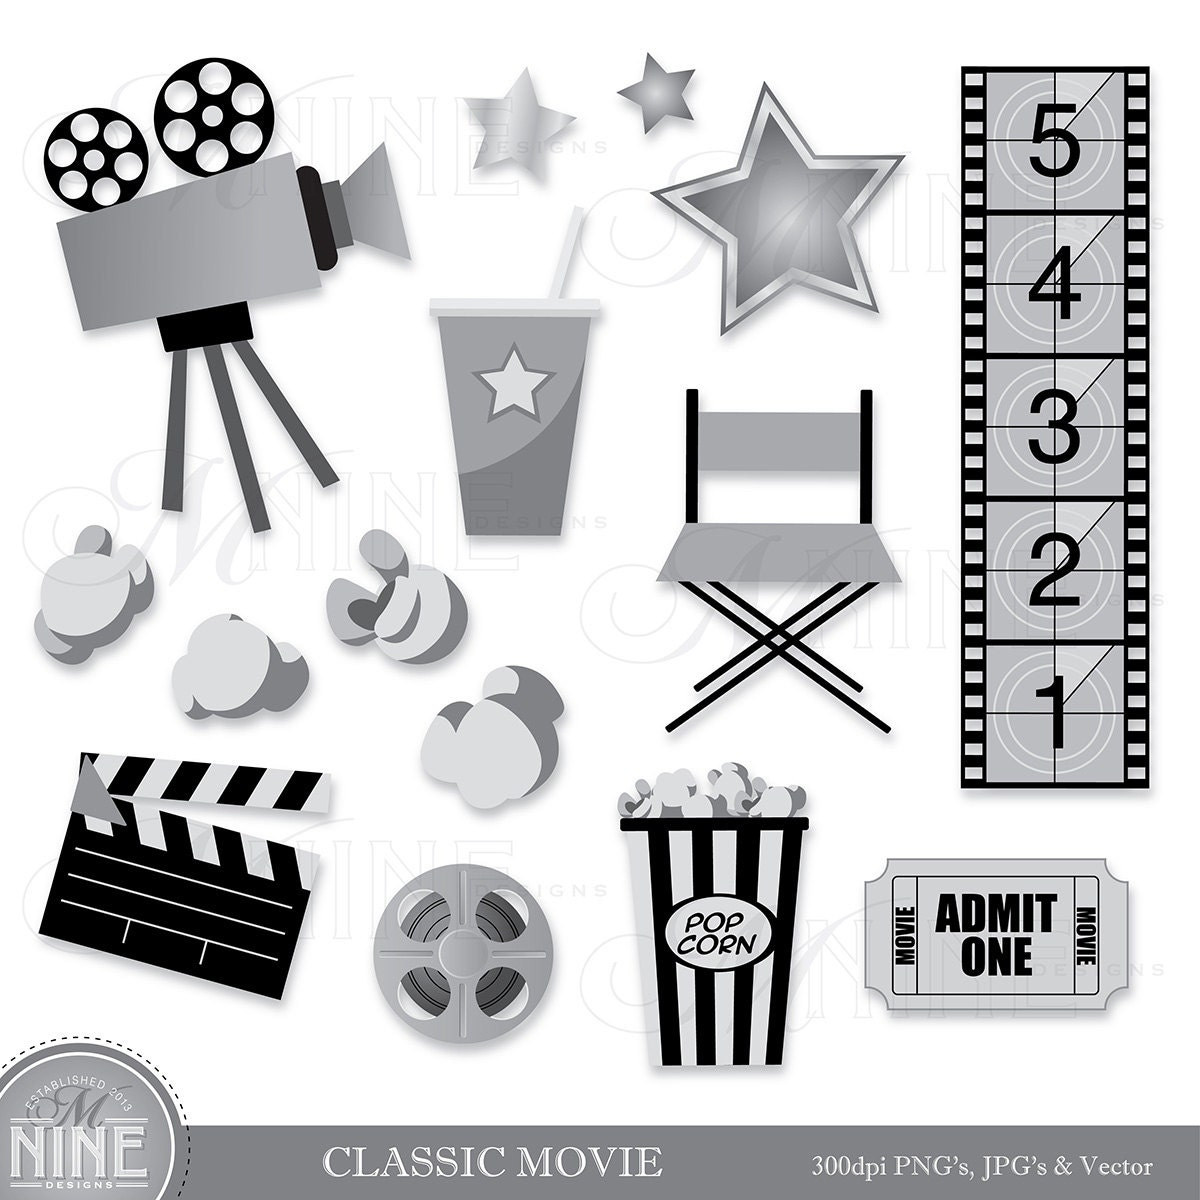 movie clipart classic clip cinema party theme hollywood theater digital cliparts clips instant items clipground stars